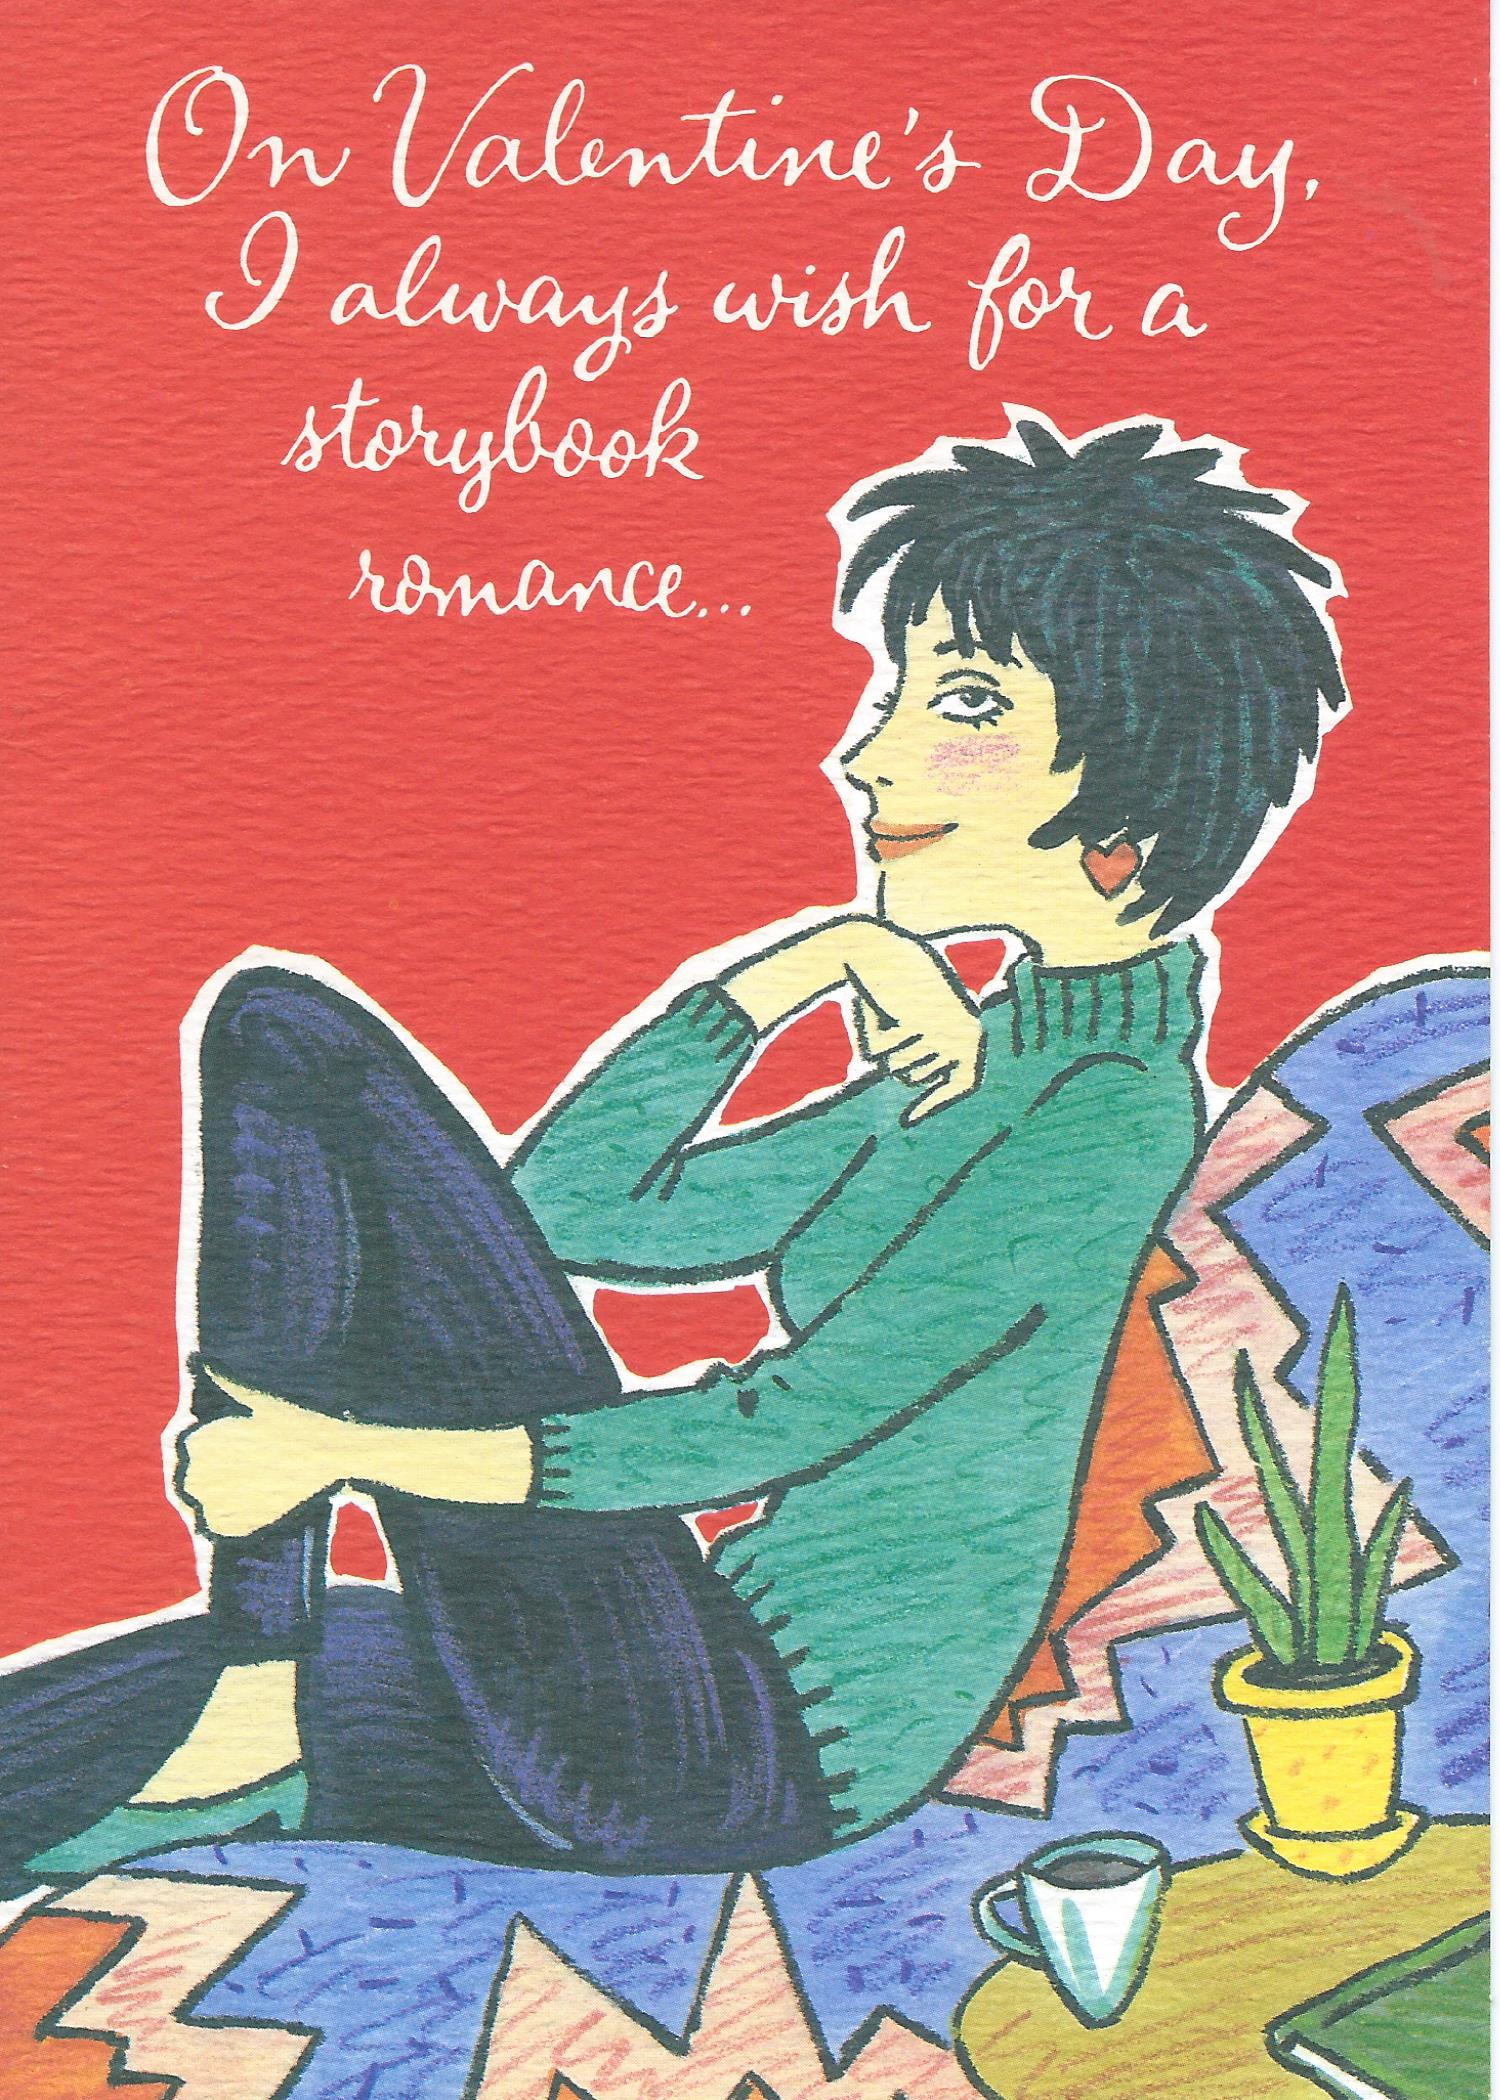 On Valentine's Day, I always wish for a storybook romance...